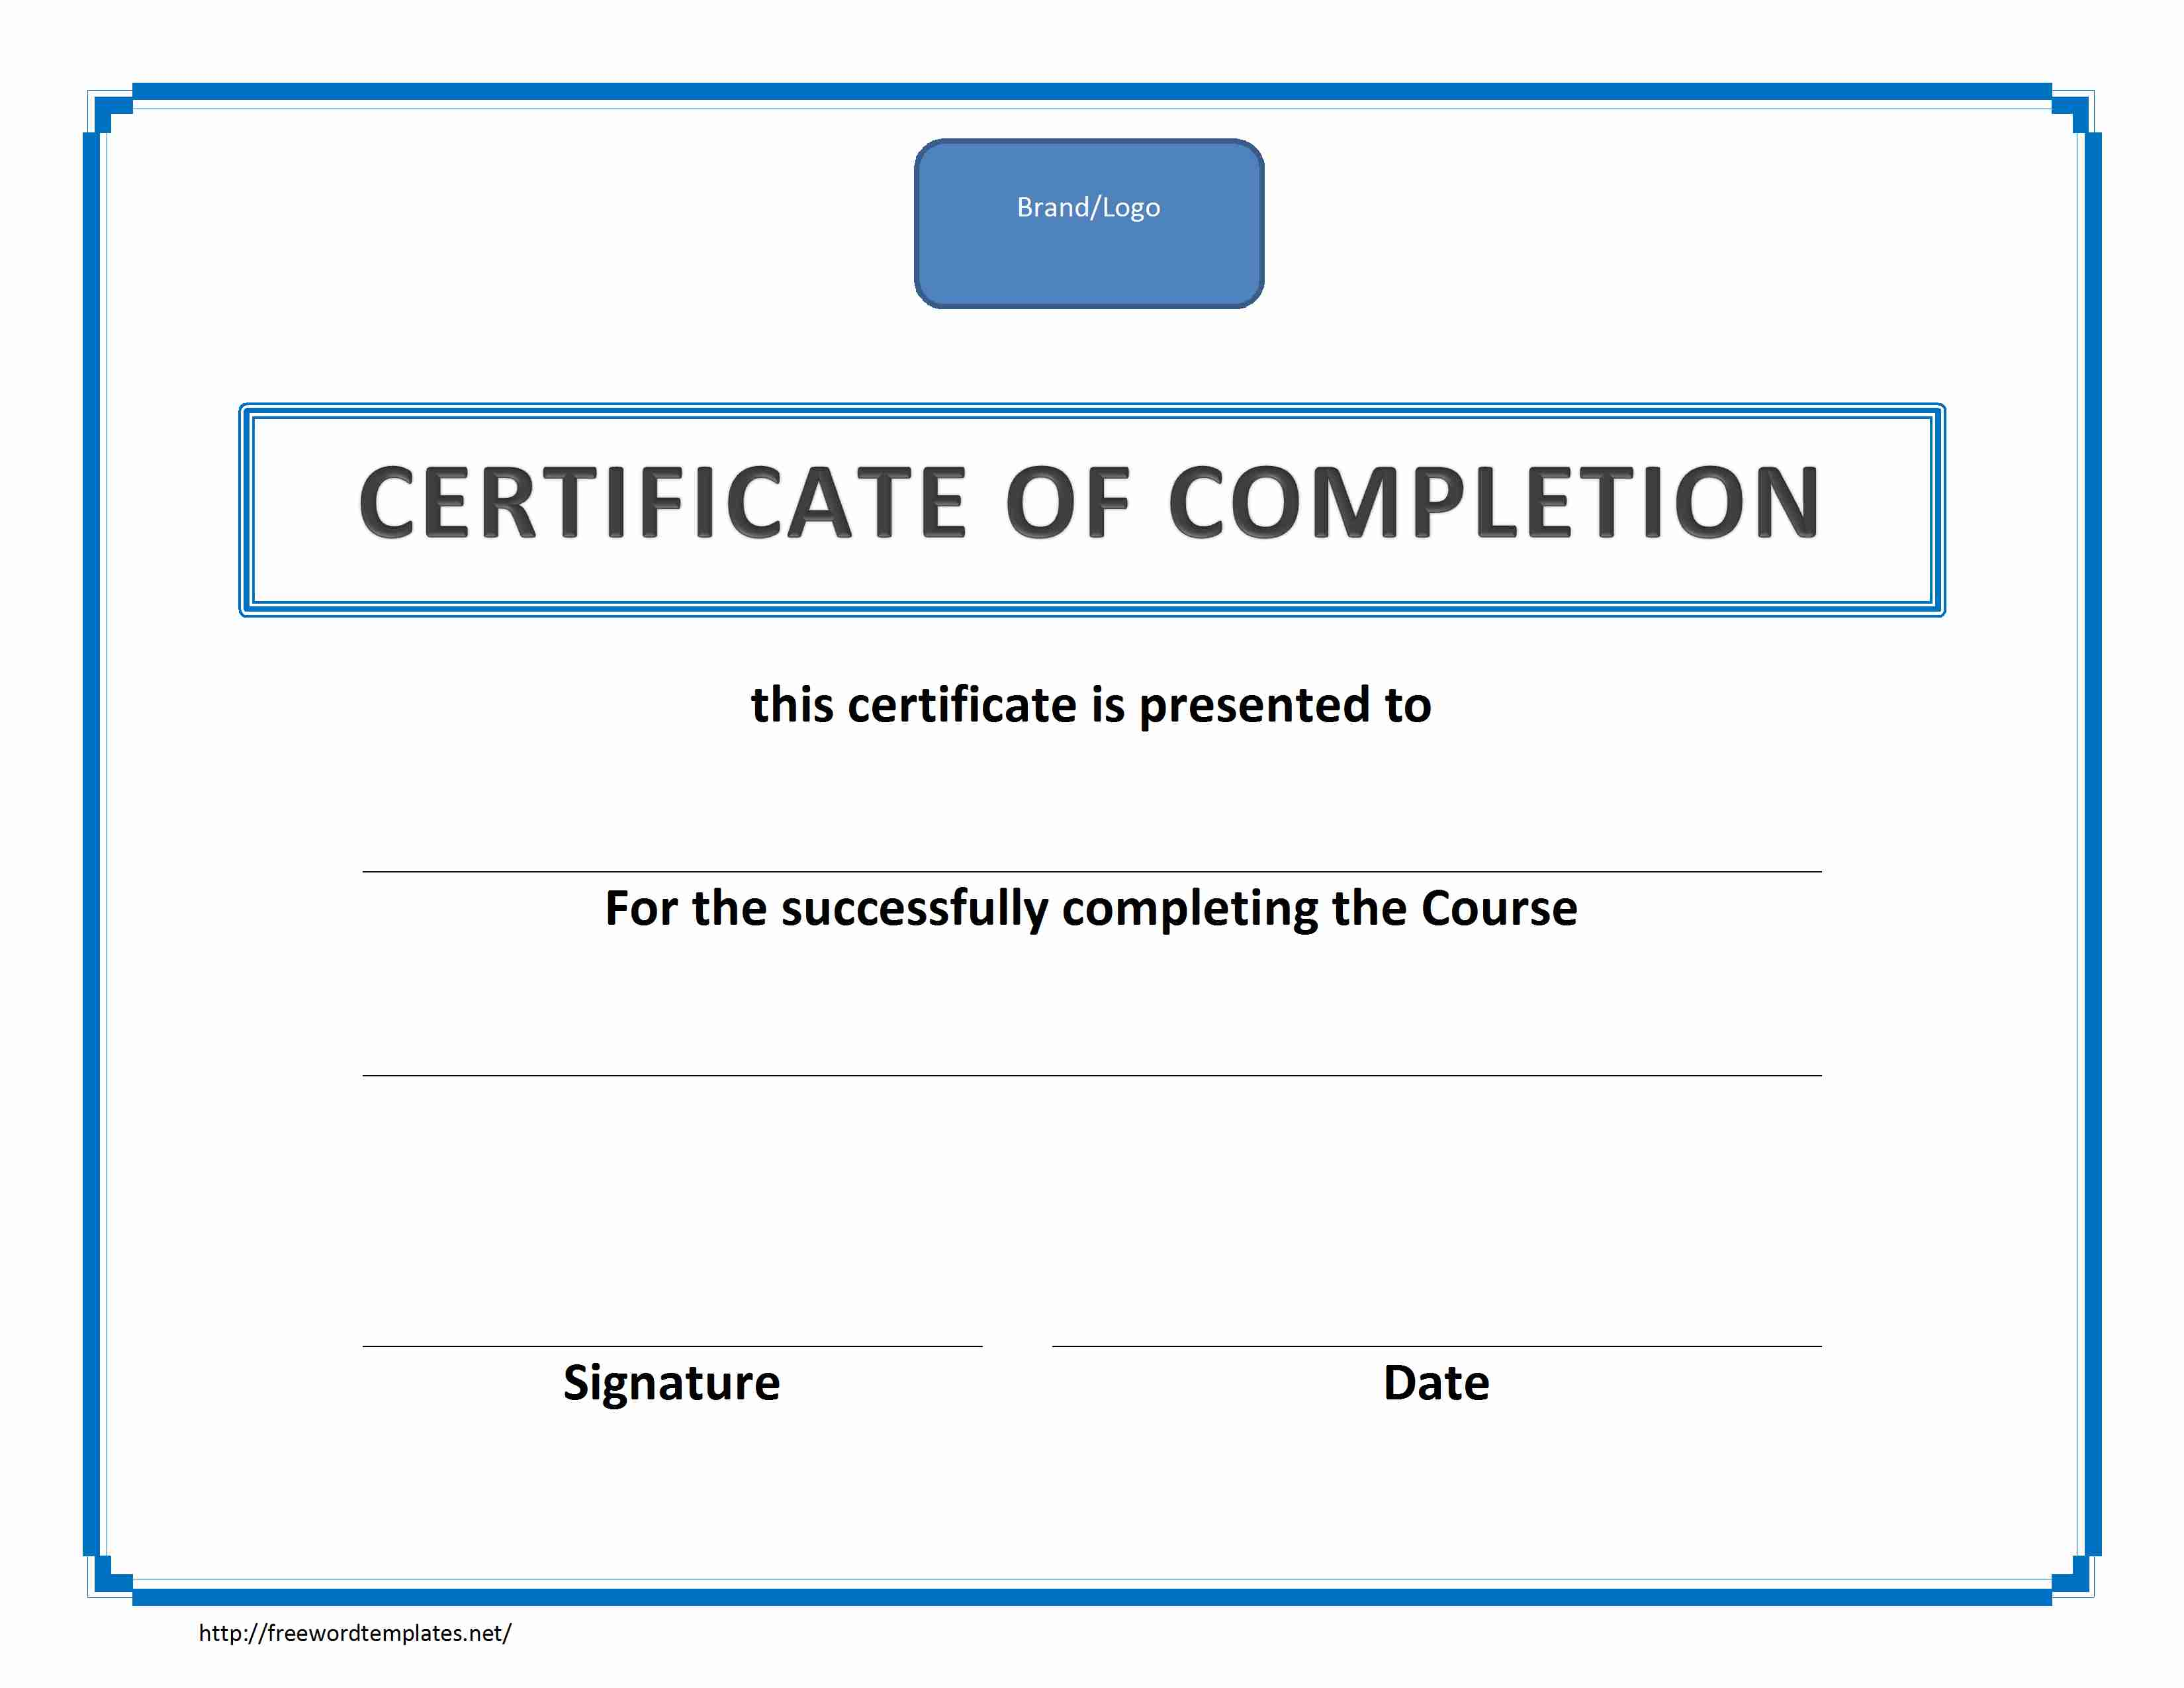 Certificate of completion of training template roho4senses training certificate of completion yelopaper Images